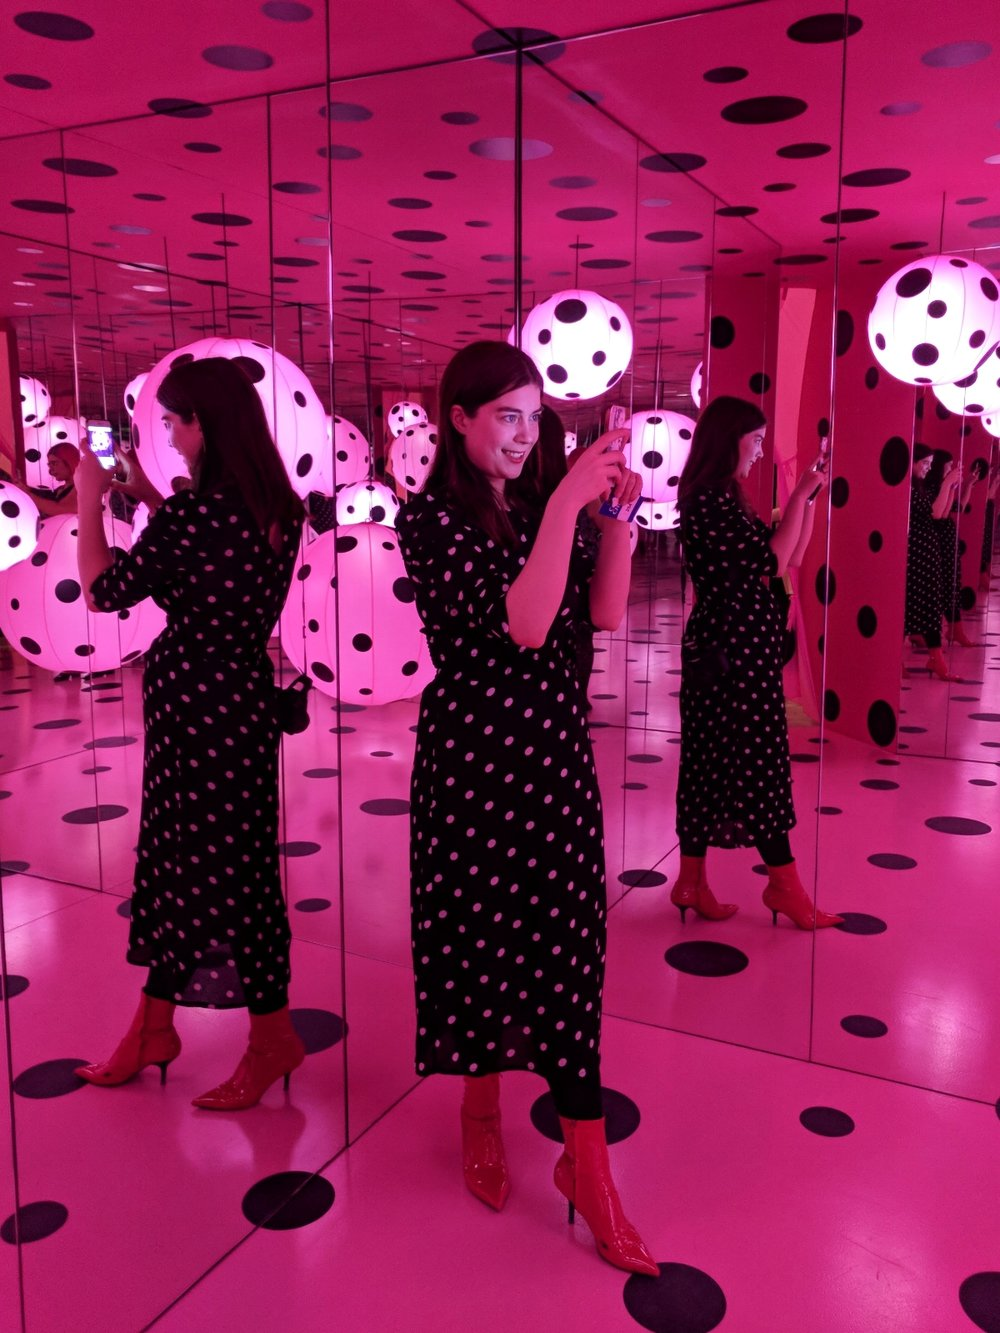 Yayoi Kusama - Dots Obsession - Love Transformed into Dots